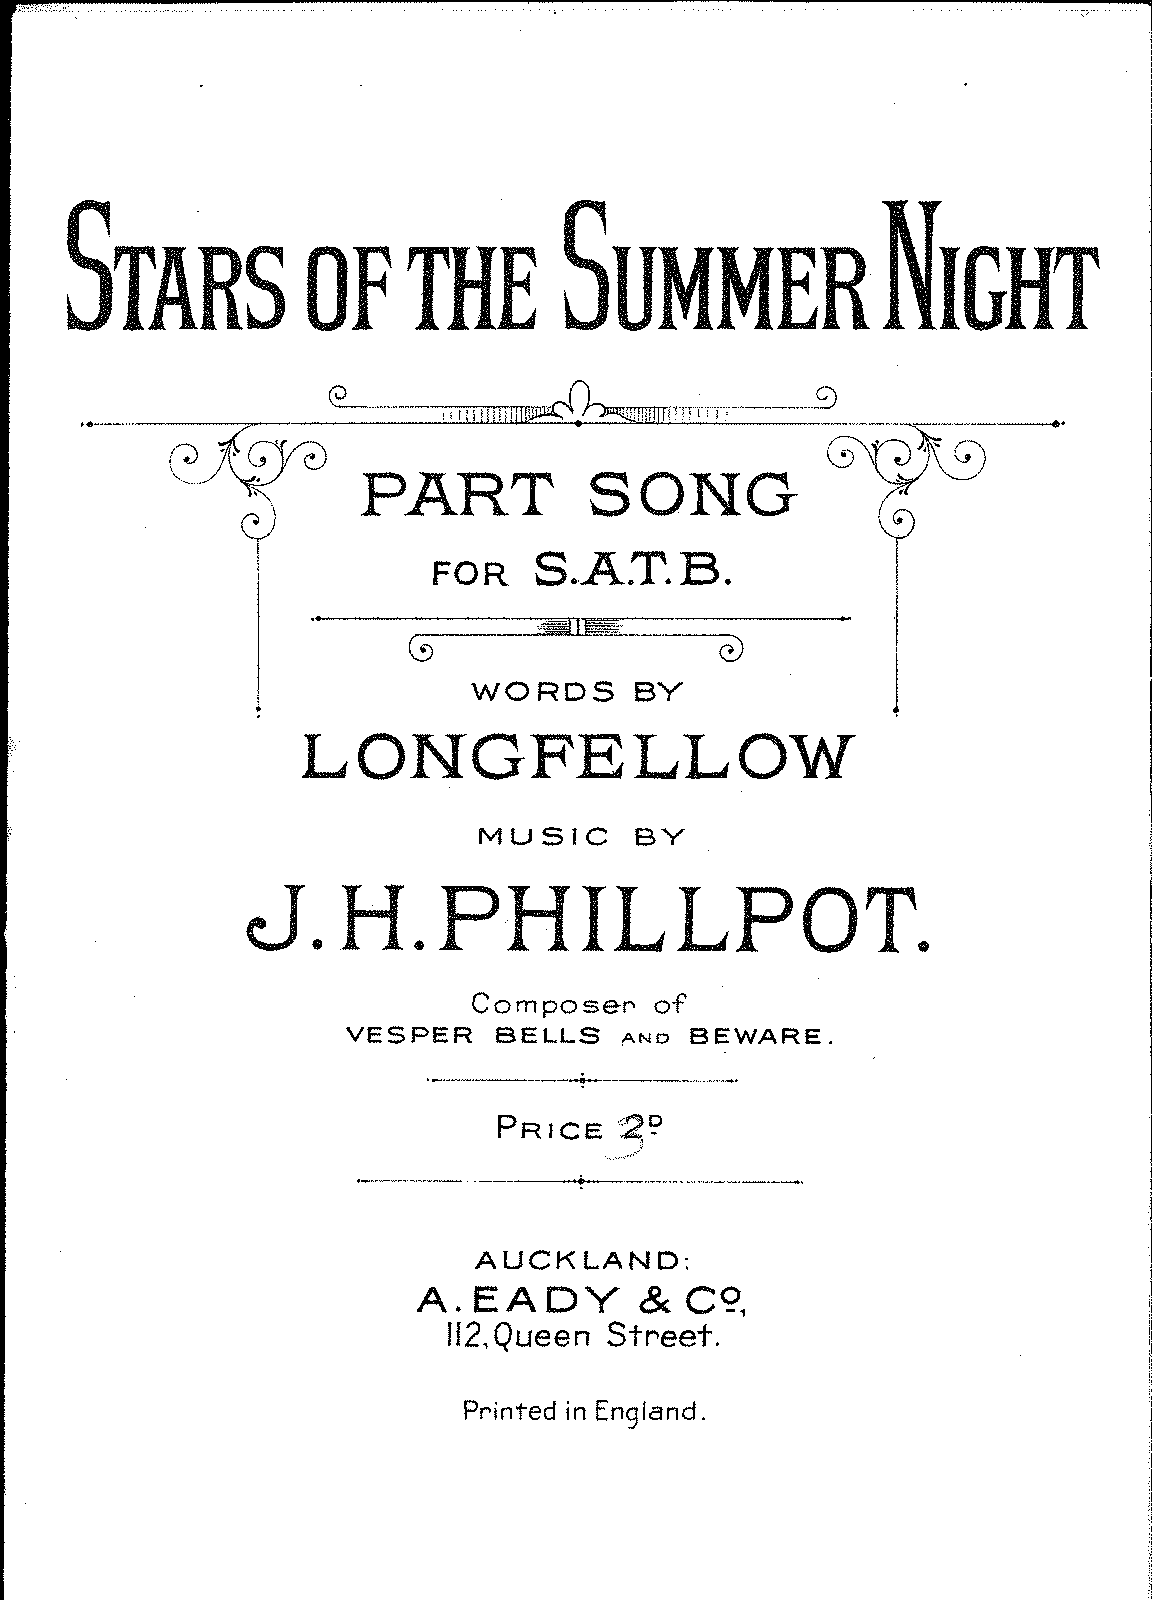 PMLP716665-phillpot stars of summer night bw 300dpi.pdf